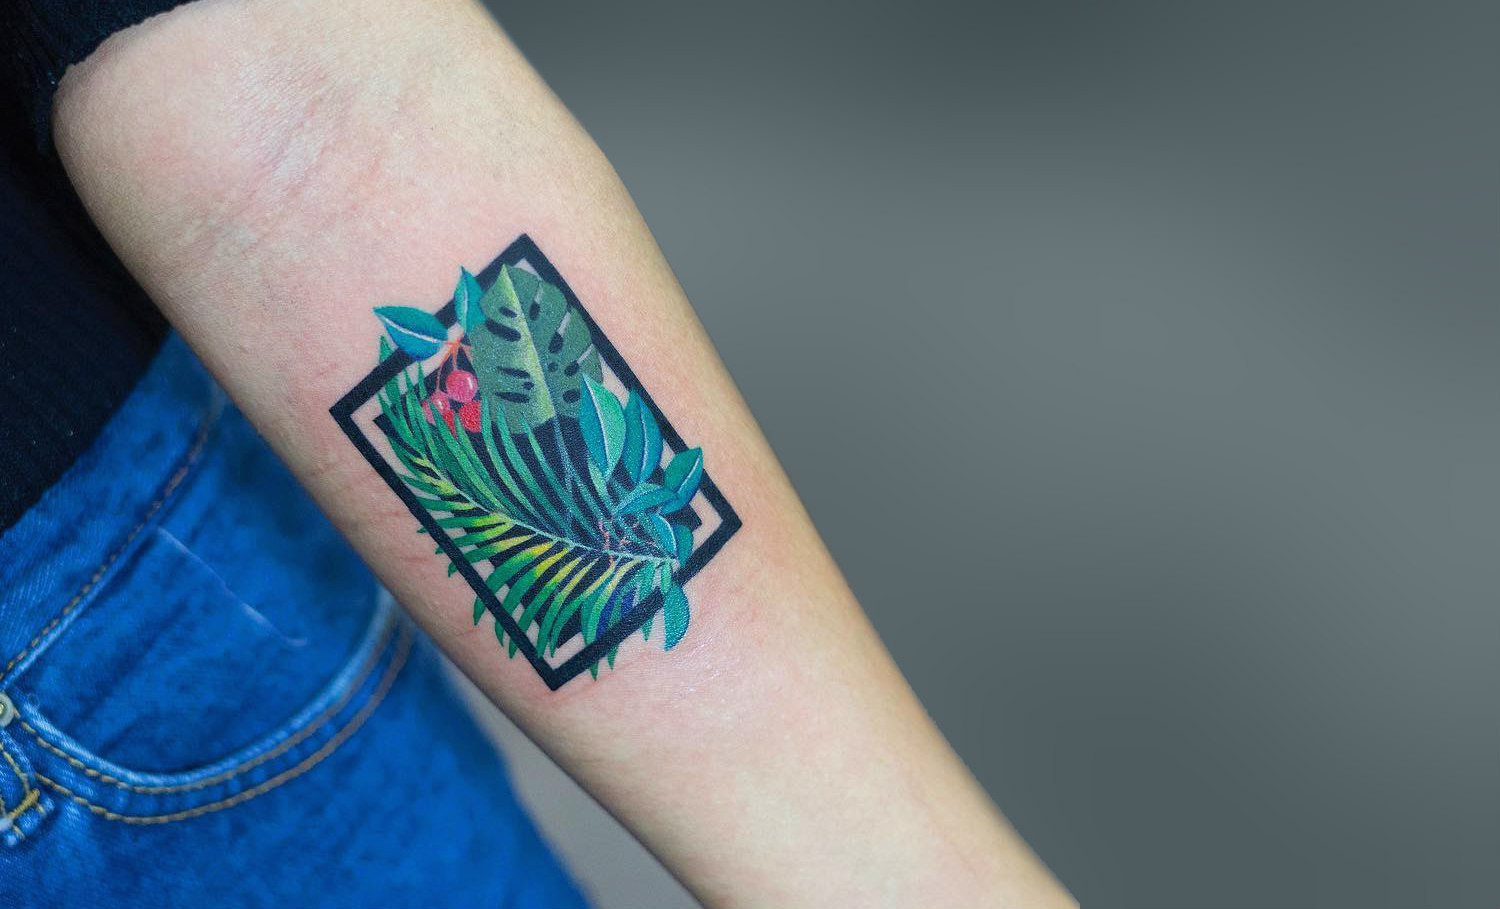 Tropical themed tattoo by Zihee